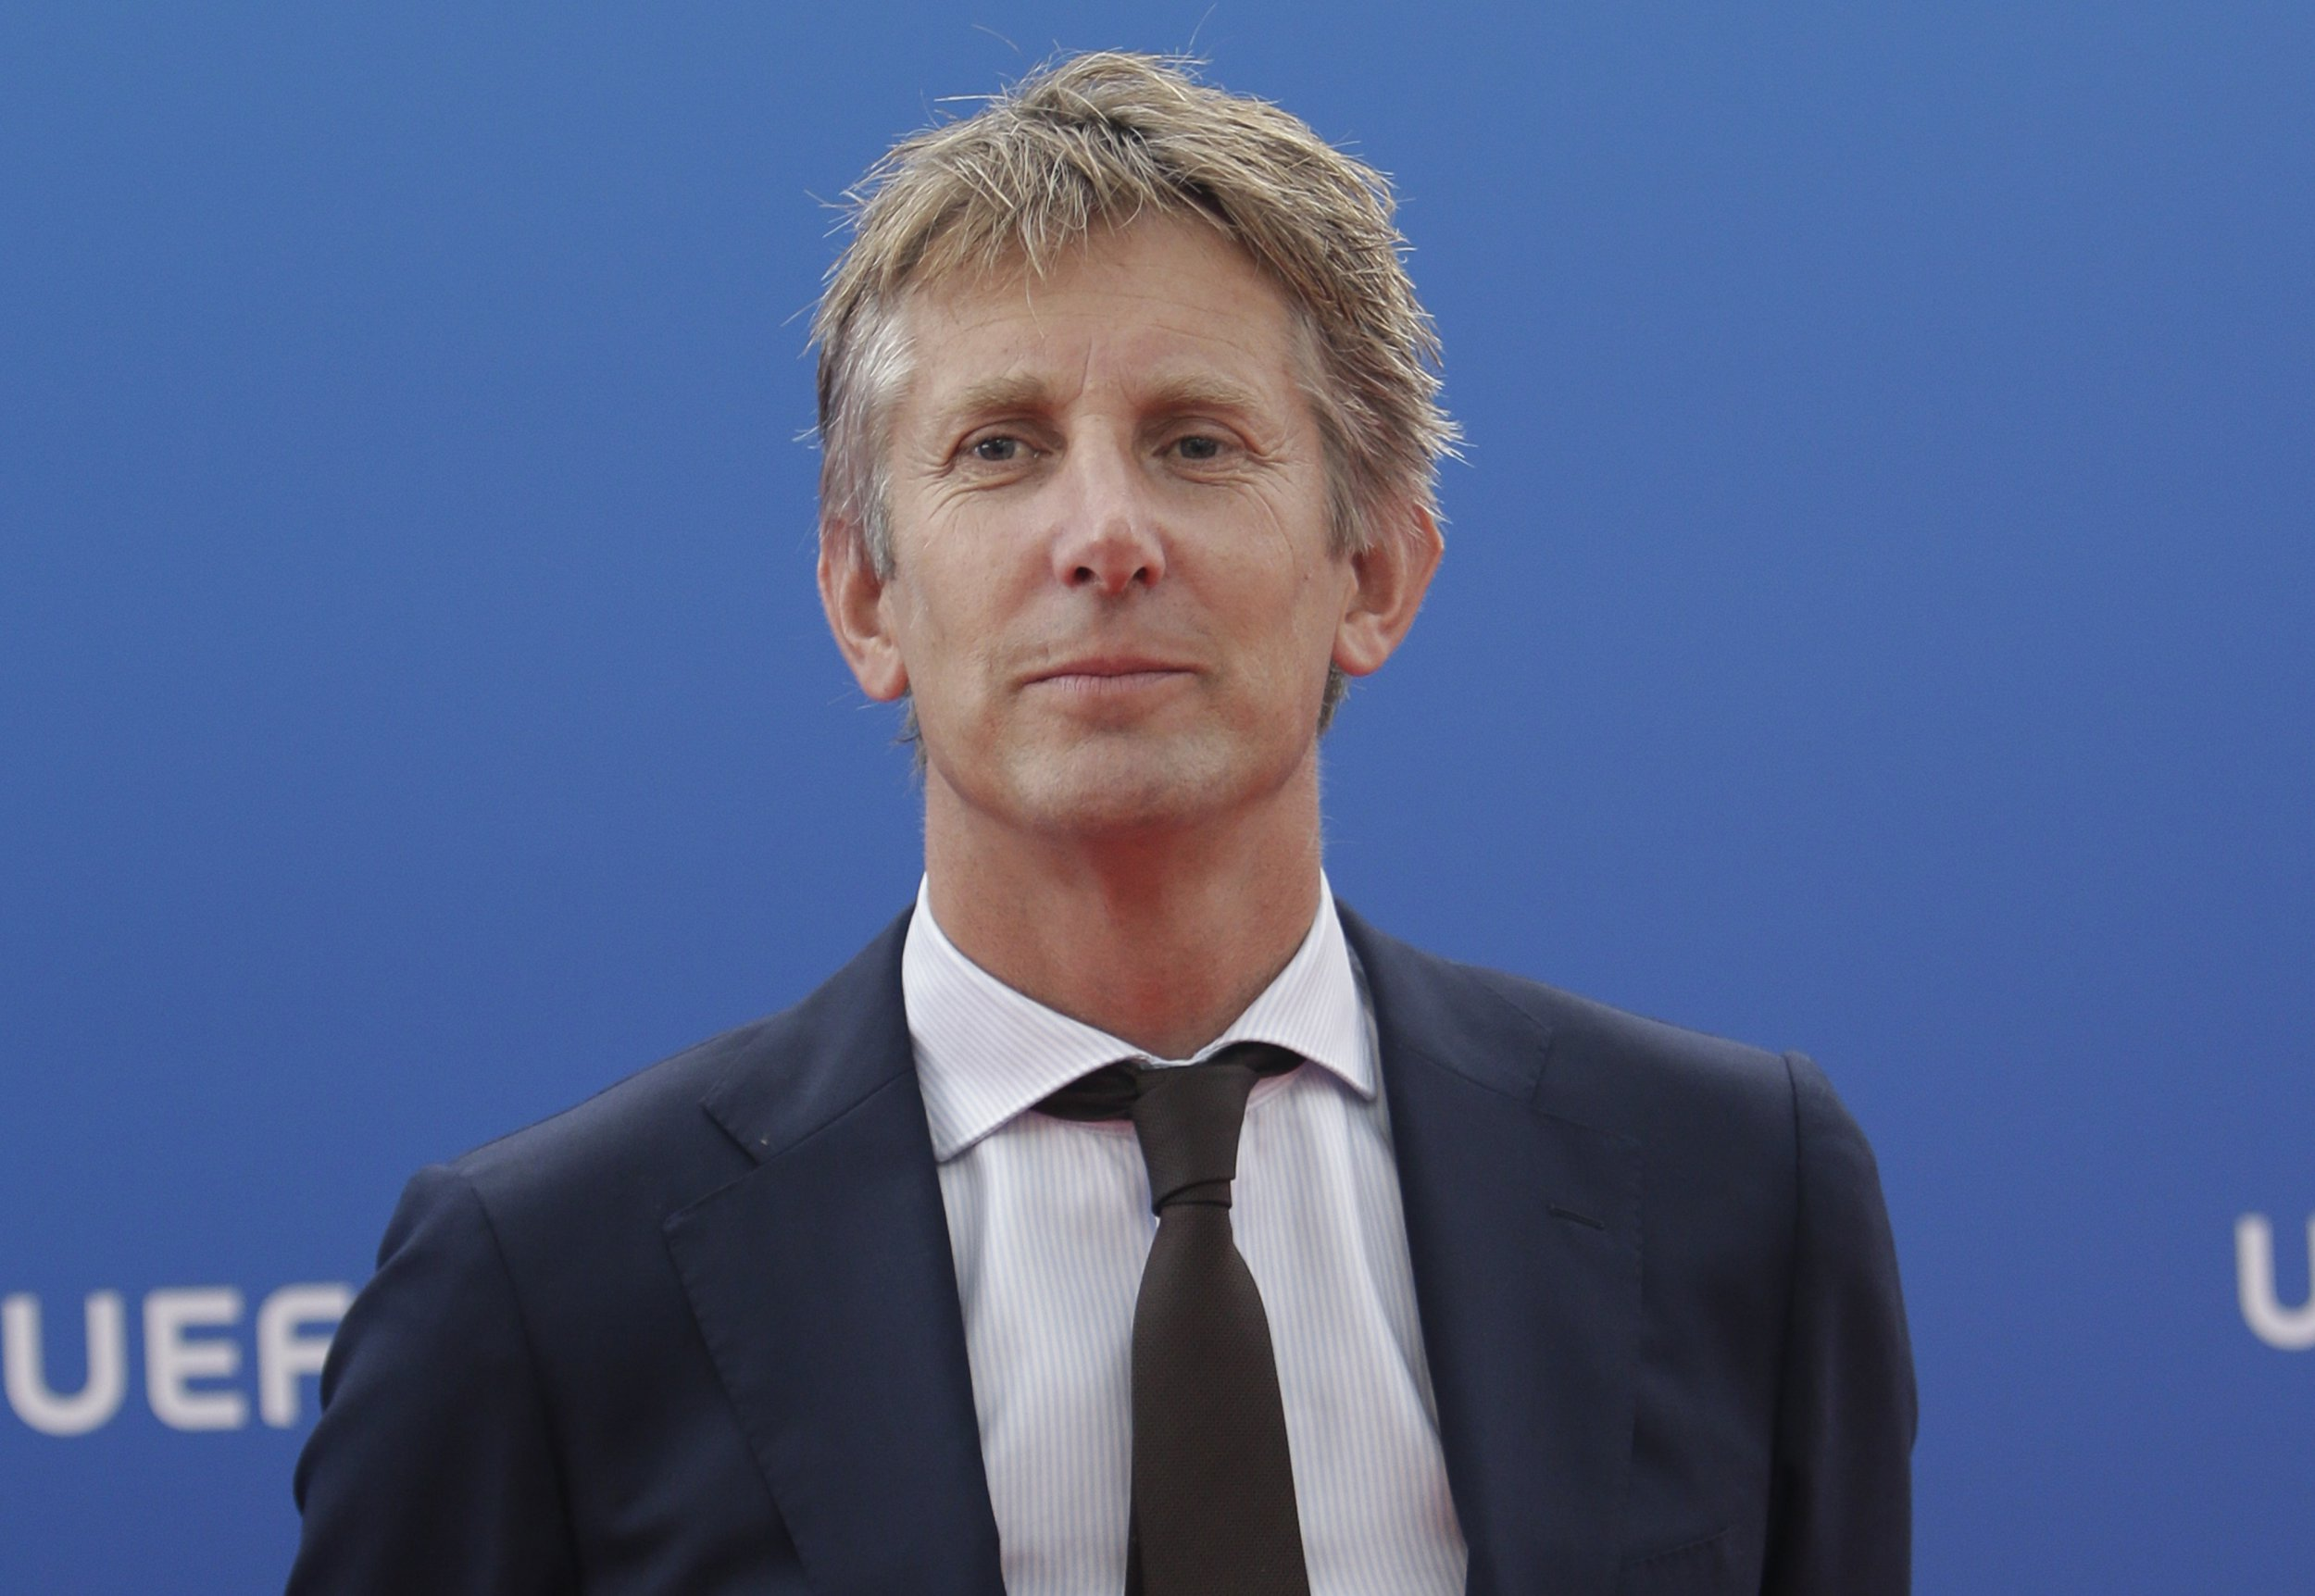 Former Ajax and Manchester United goalkeeper Edwin Van Der Sar arrives for the UEFA Champions League draw at the Grimaldi Forum, in Monaco, Thursday, Aug. 30, 2018. (AP Photo/Claude Paris)